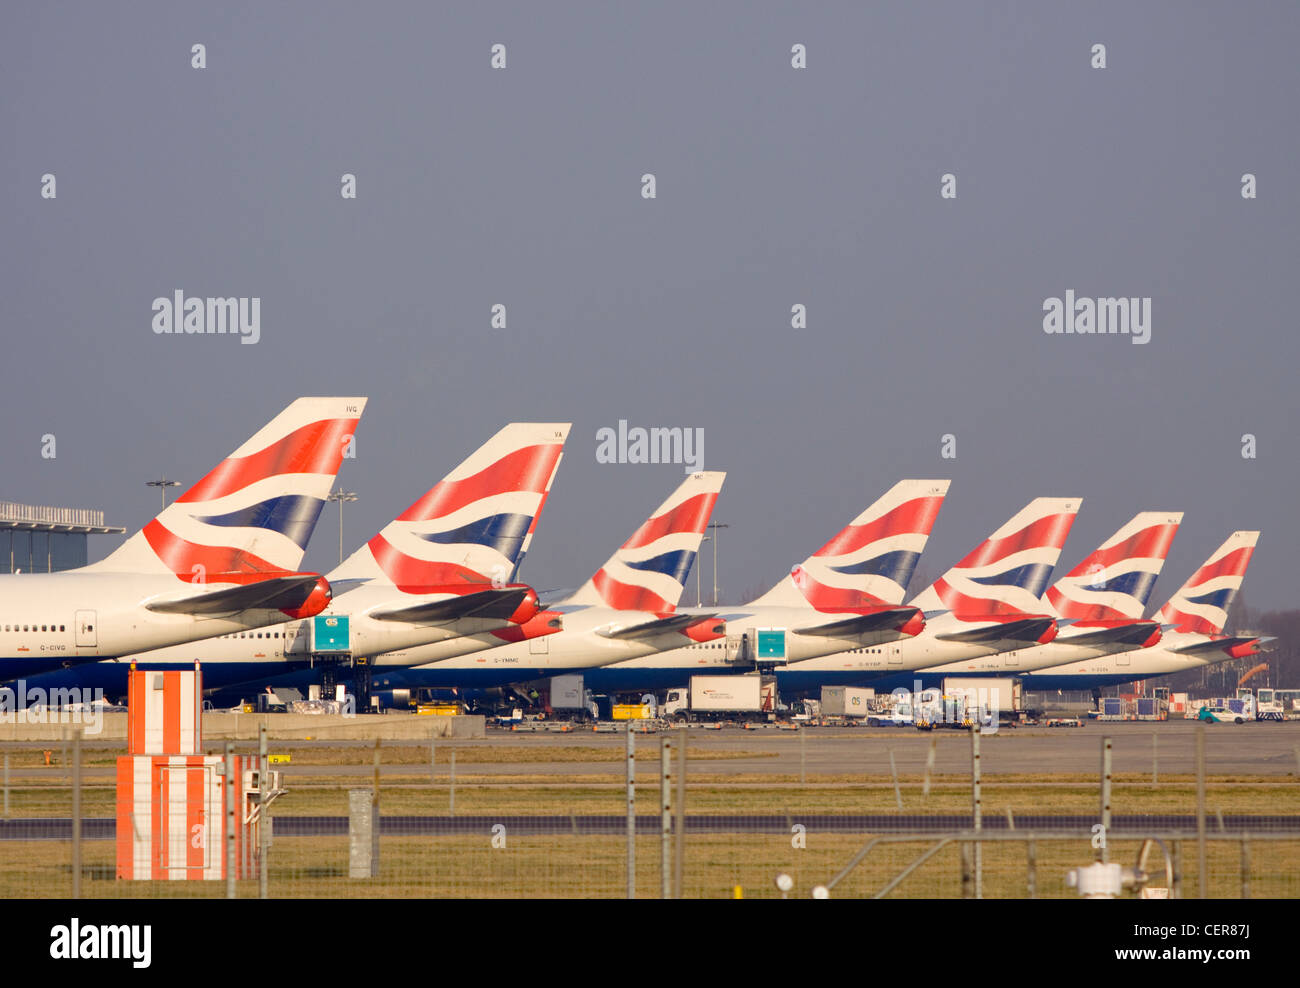 a-row-of-tail-fins-from-british-airways-